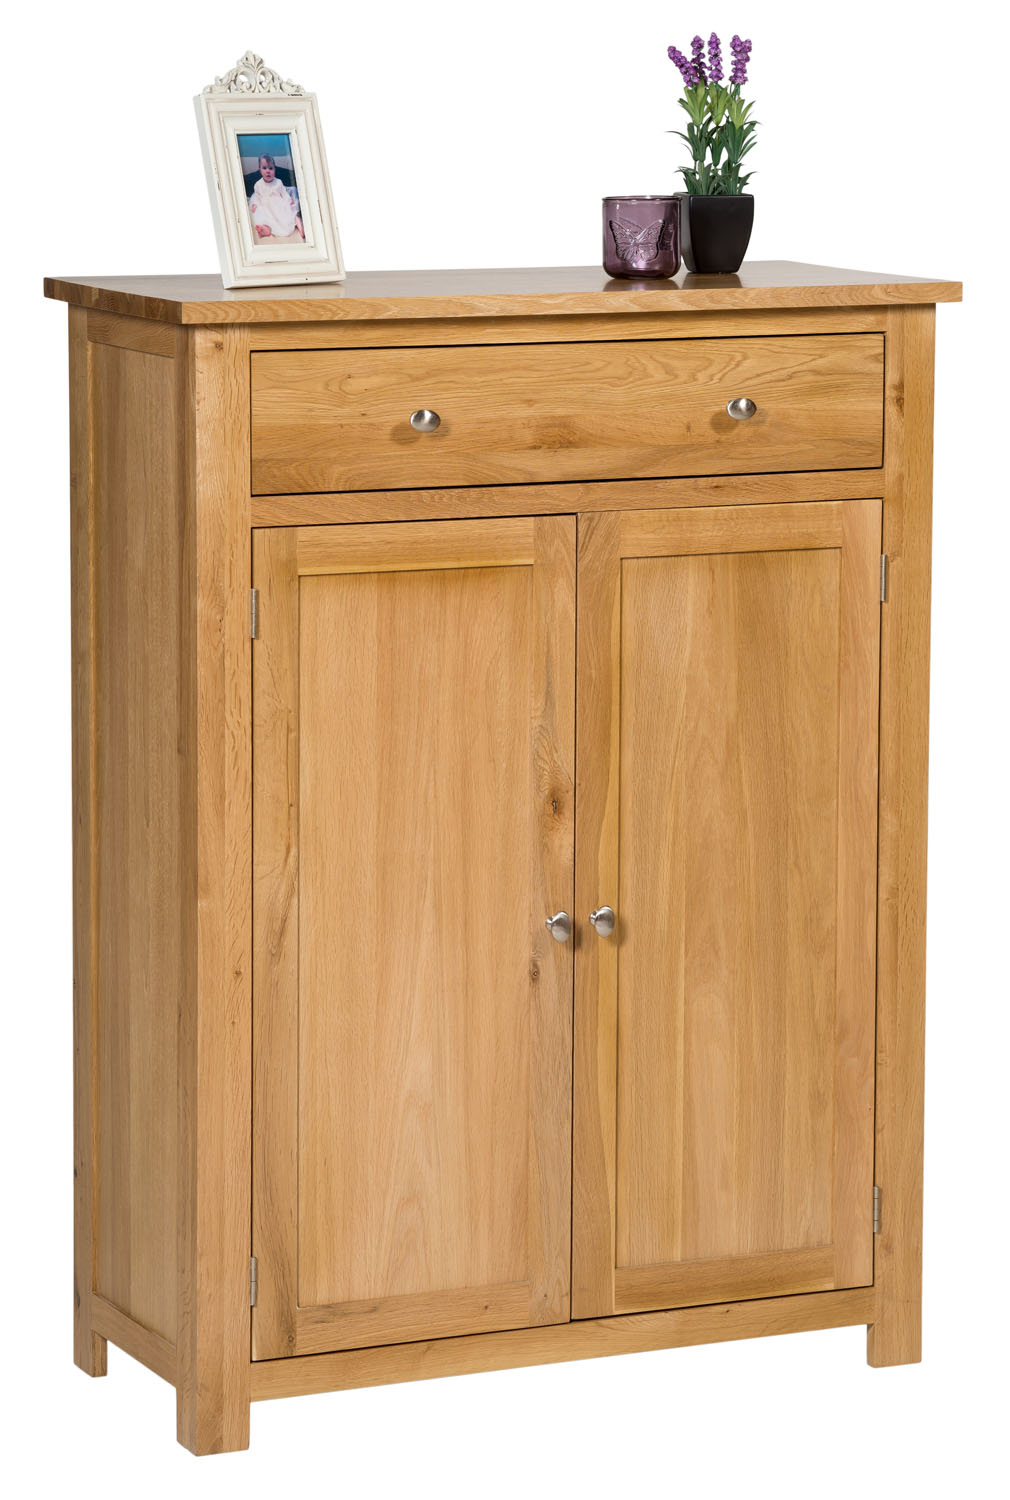 Large Oak Shoe Storage Cabinet Wooden Hallway Cupboard Organiser With Drawer Ebay